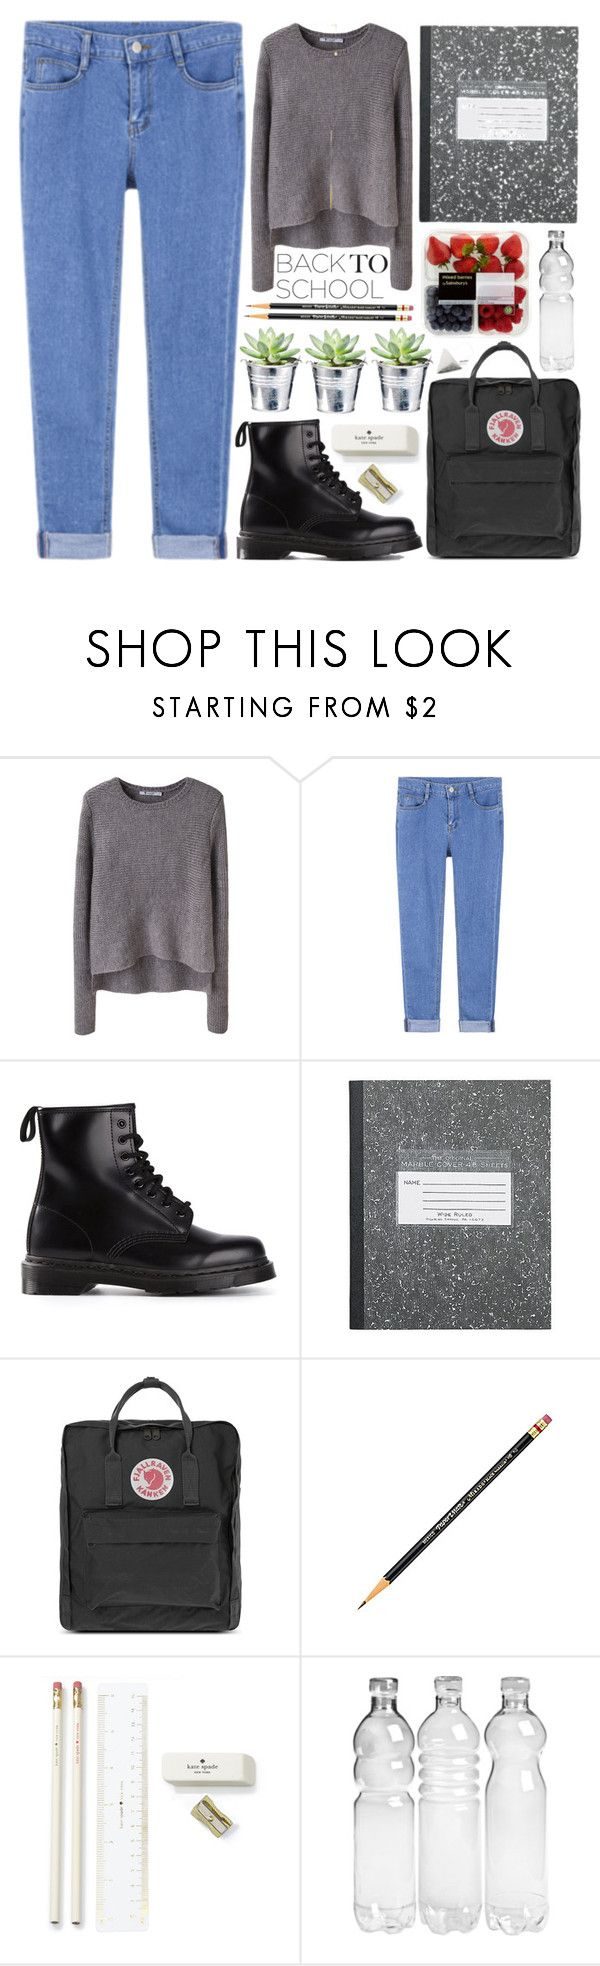 New Shoes - Polyvore Contest by evangeline-lily on Polyvore featuring moda, T By Alexander Wang, Dr. Martens, Fjällräven, Michael Kors, Kate Spade, CO, BackToSchool and AlexanderWang